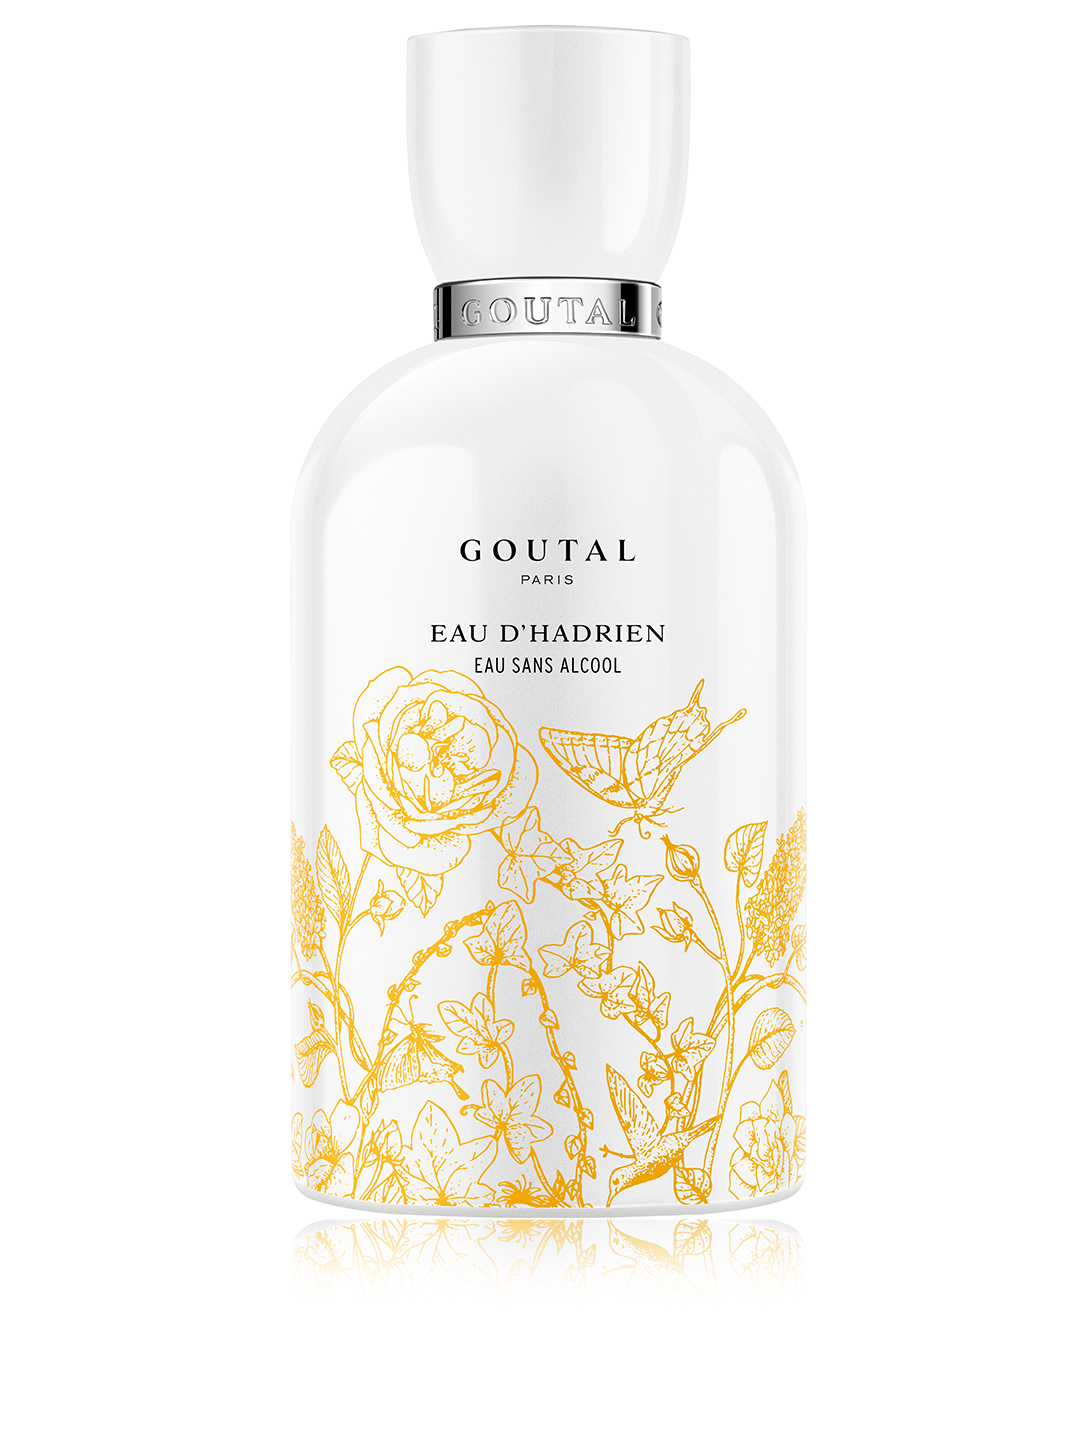 GOUTAL PARIS Eau d' Hadrien Alcohol-Free Water Beauty